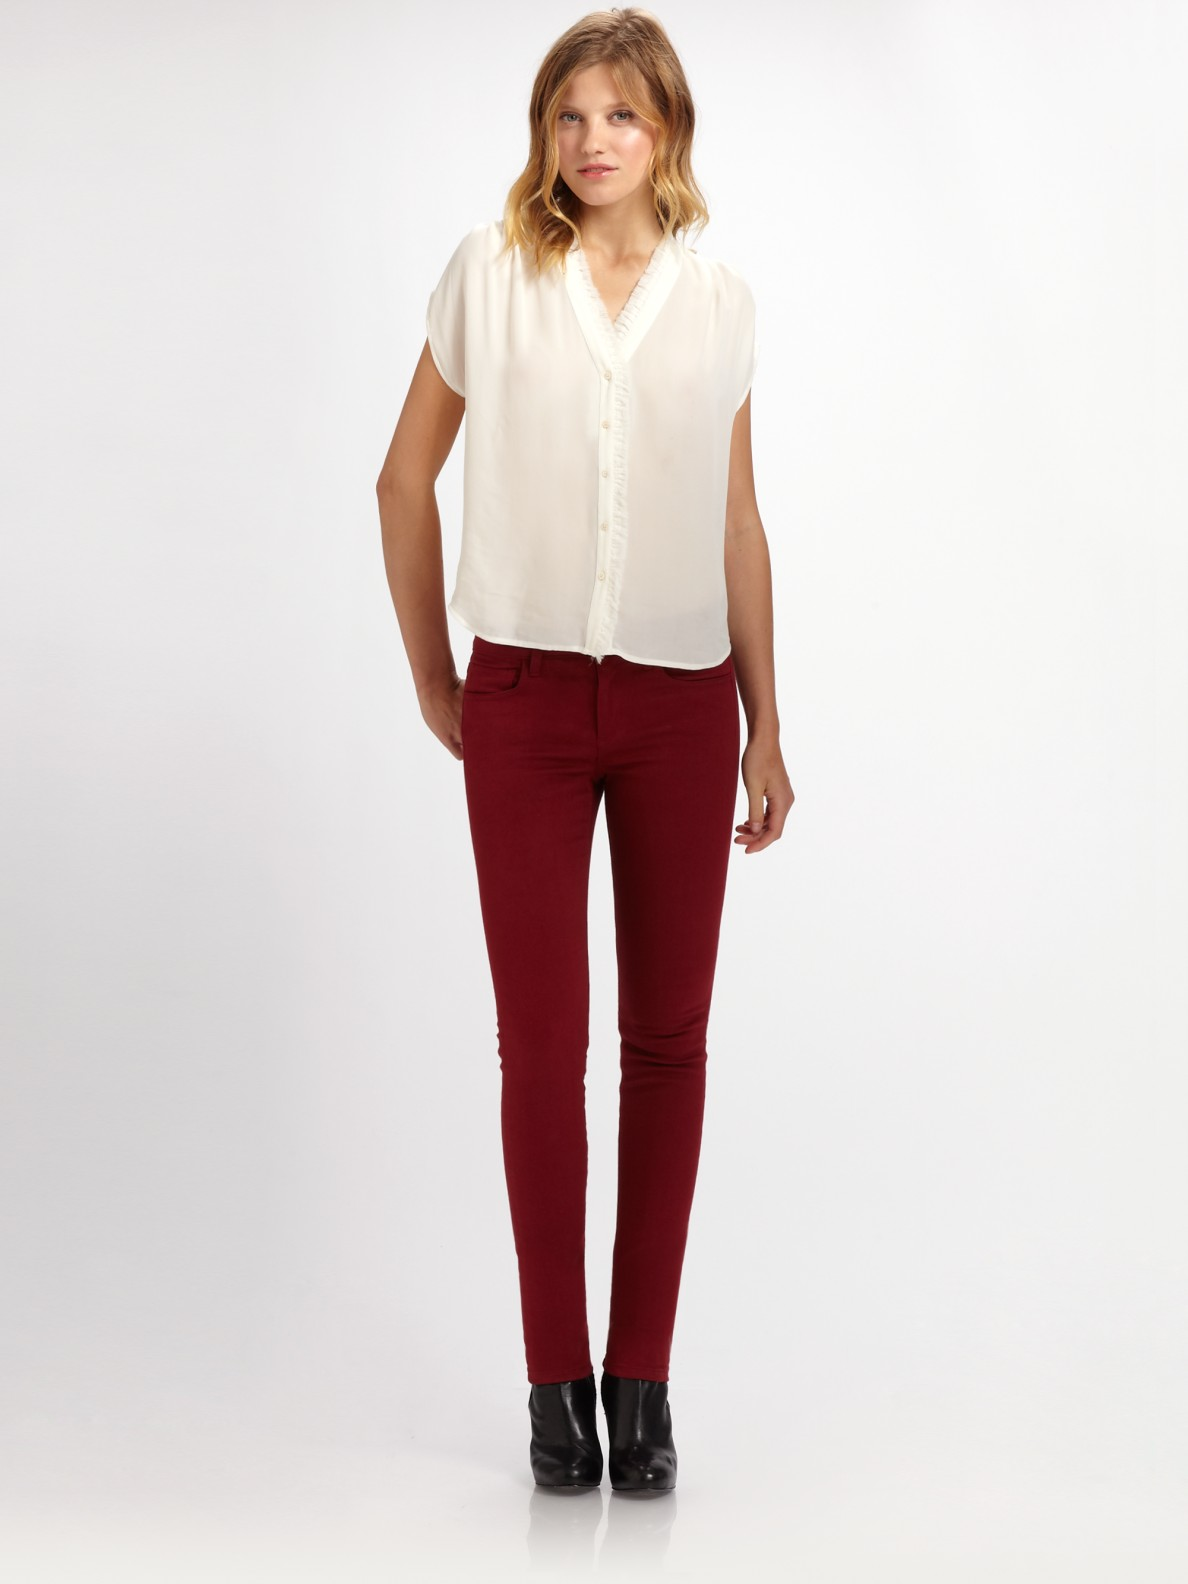 Lyst - Joe'S Jeans Colored Skinny Jeans in Red